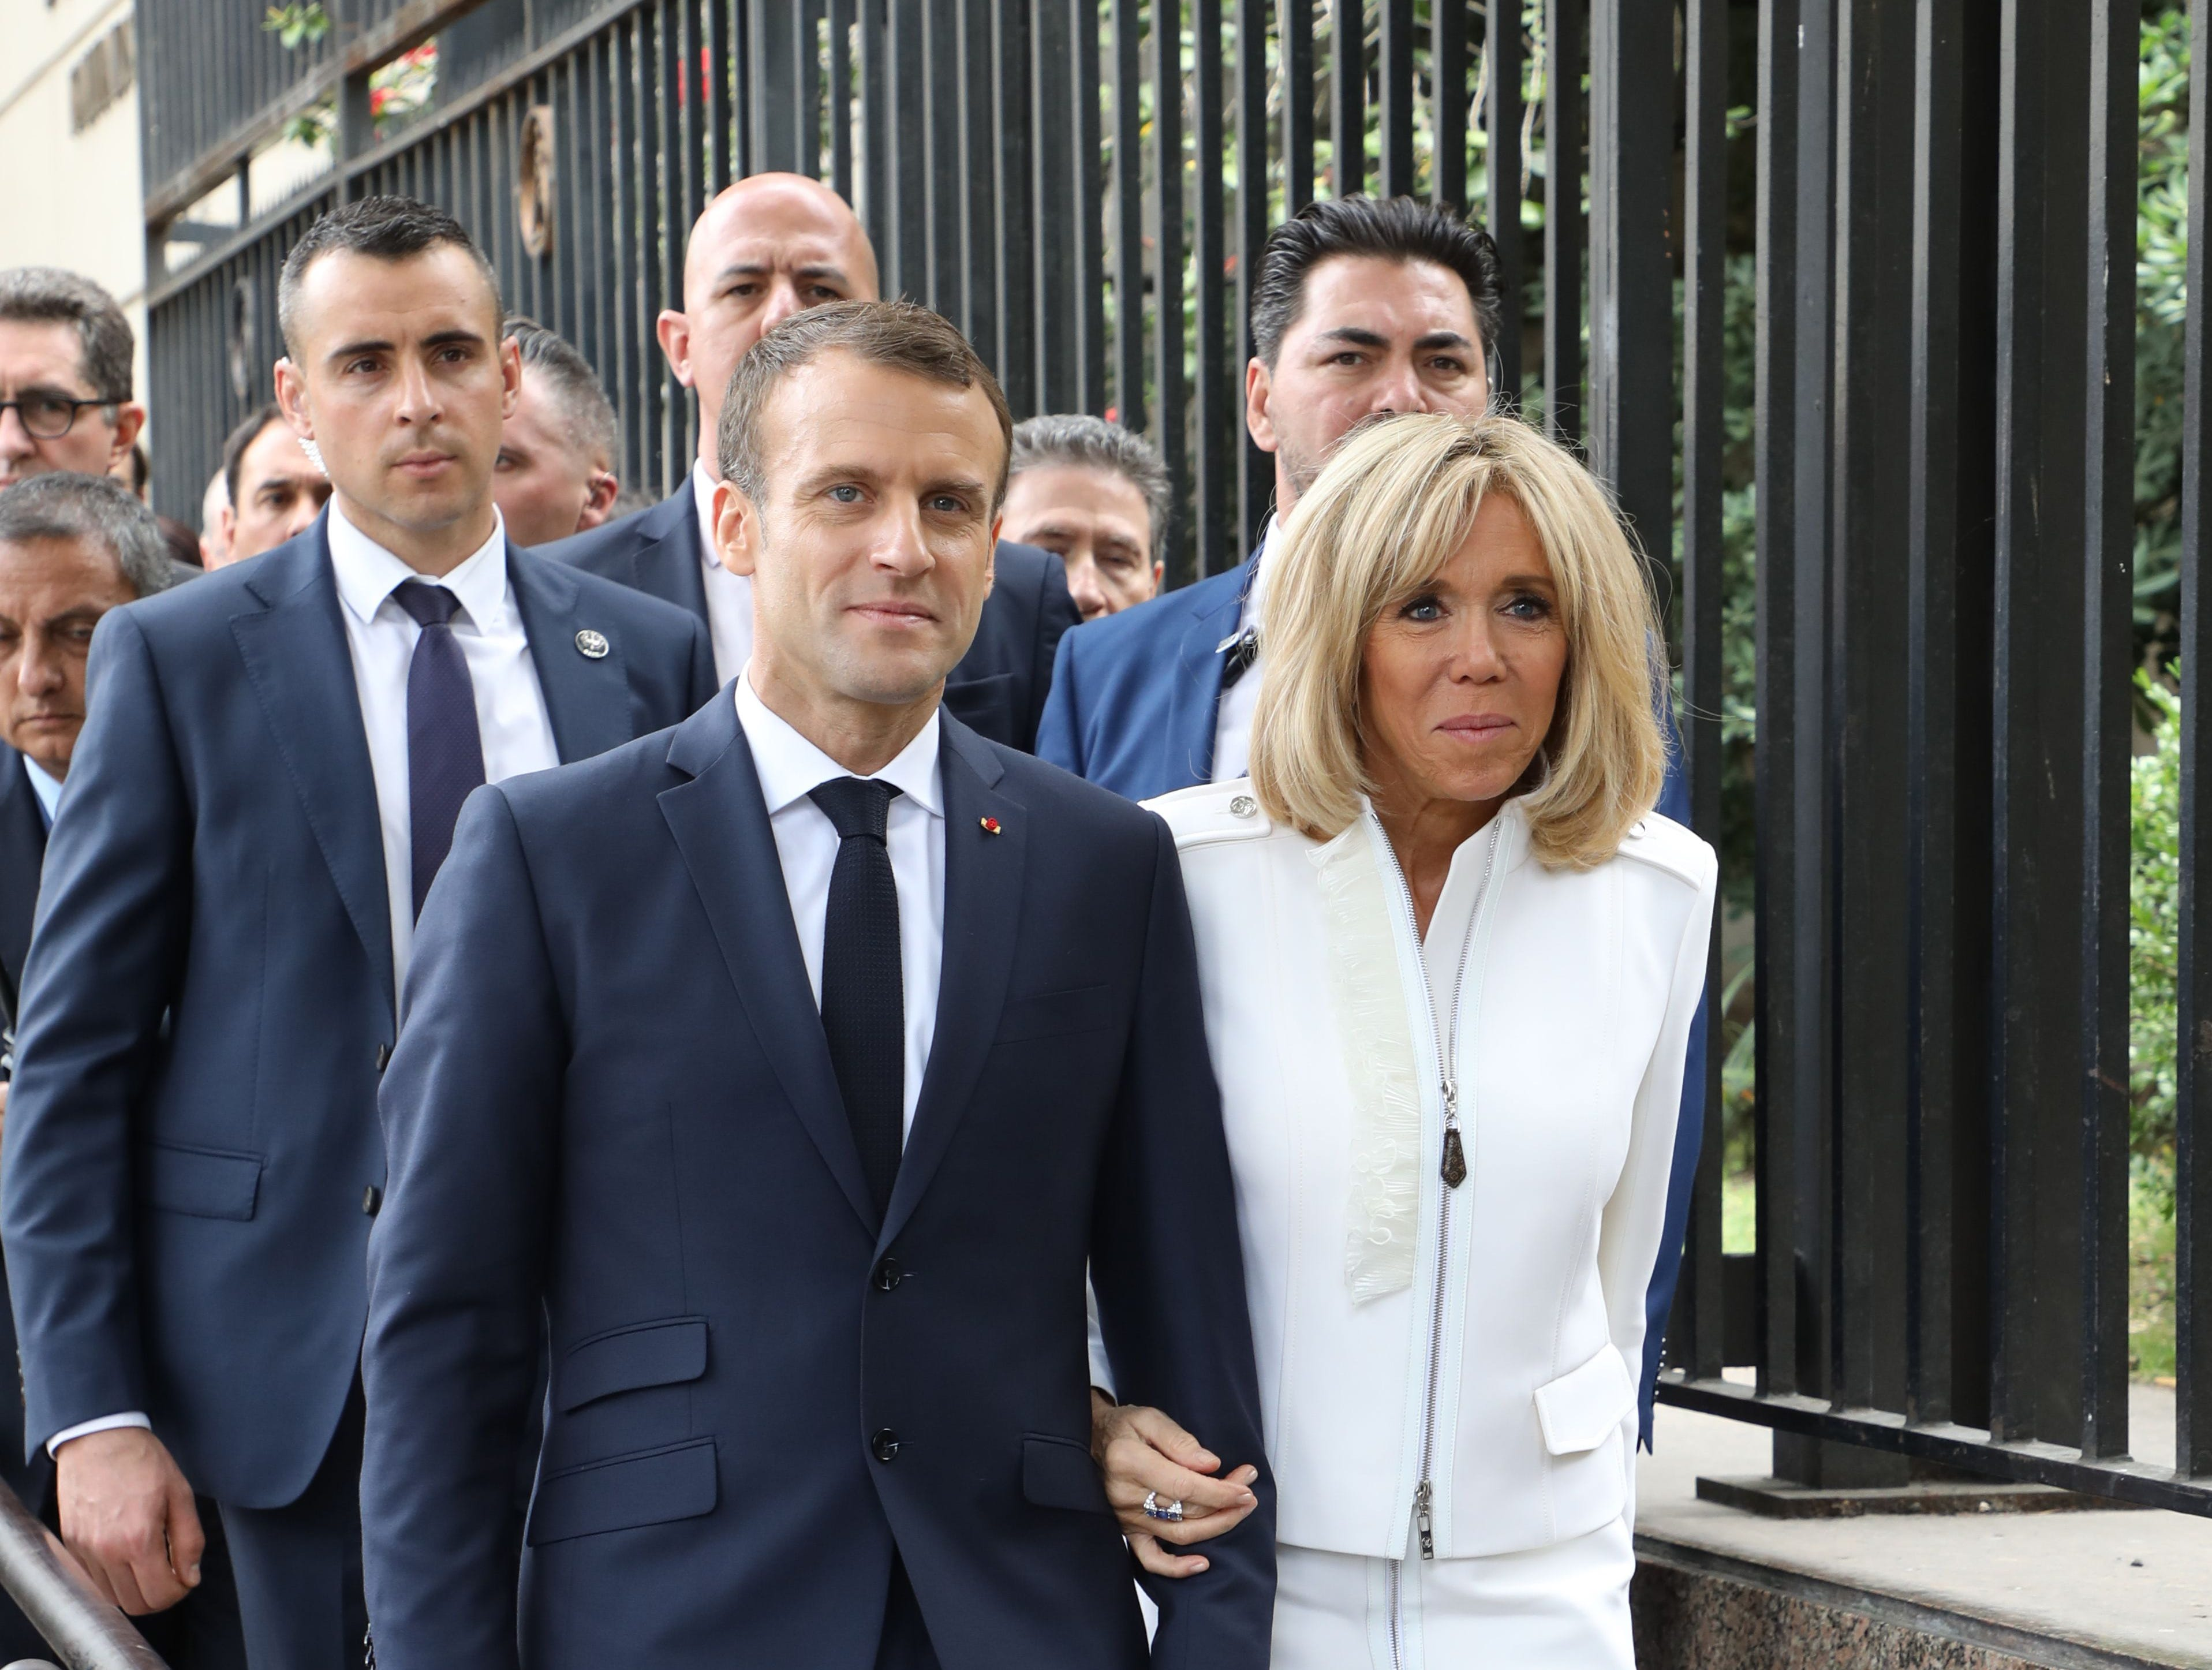 """France's President Emmanuel Macron and France's First Lady Brigitte Macron visit the Metropolitan Cathedral in Buenos Aires on November 29, 2018. - Macron arrived on the eve for a two-day G20 summit beginning on November 30 likely to be dominated by simmering international tensions over trade. In an interview with Argentine daily La Nacion, he warned against the risk of """"a destructive trade war for all"""" emanating from the G20 discussions. (Photo by Ludovic MARIN / AFP)        (Photo credit should read LUDOVIC MARIN/AFP/Getty Images)"""